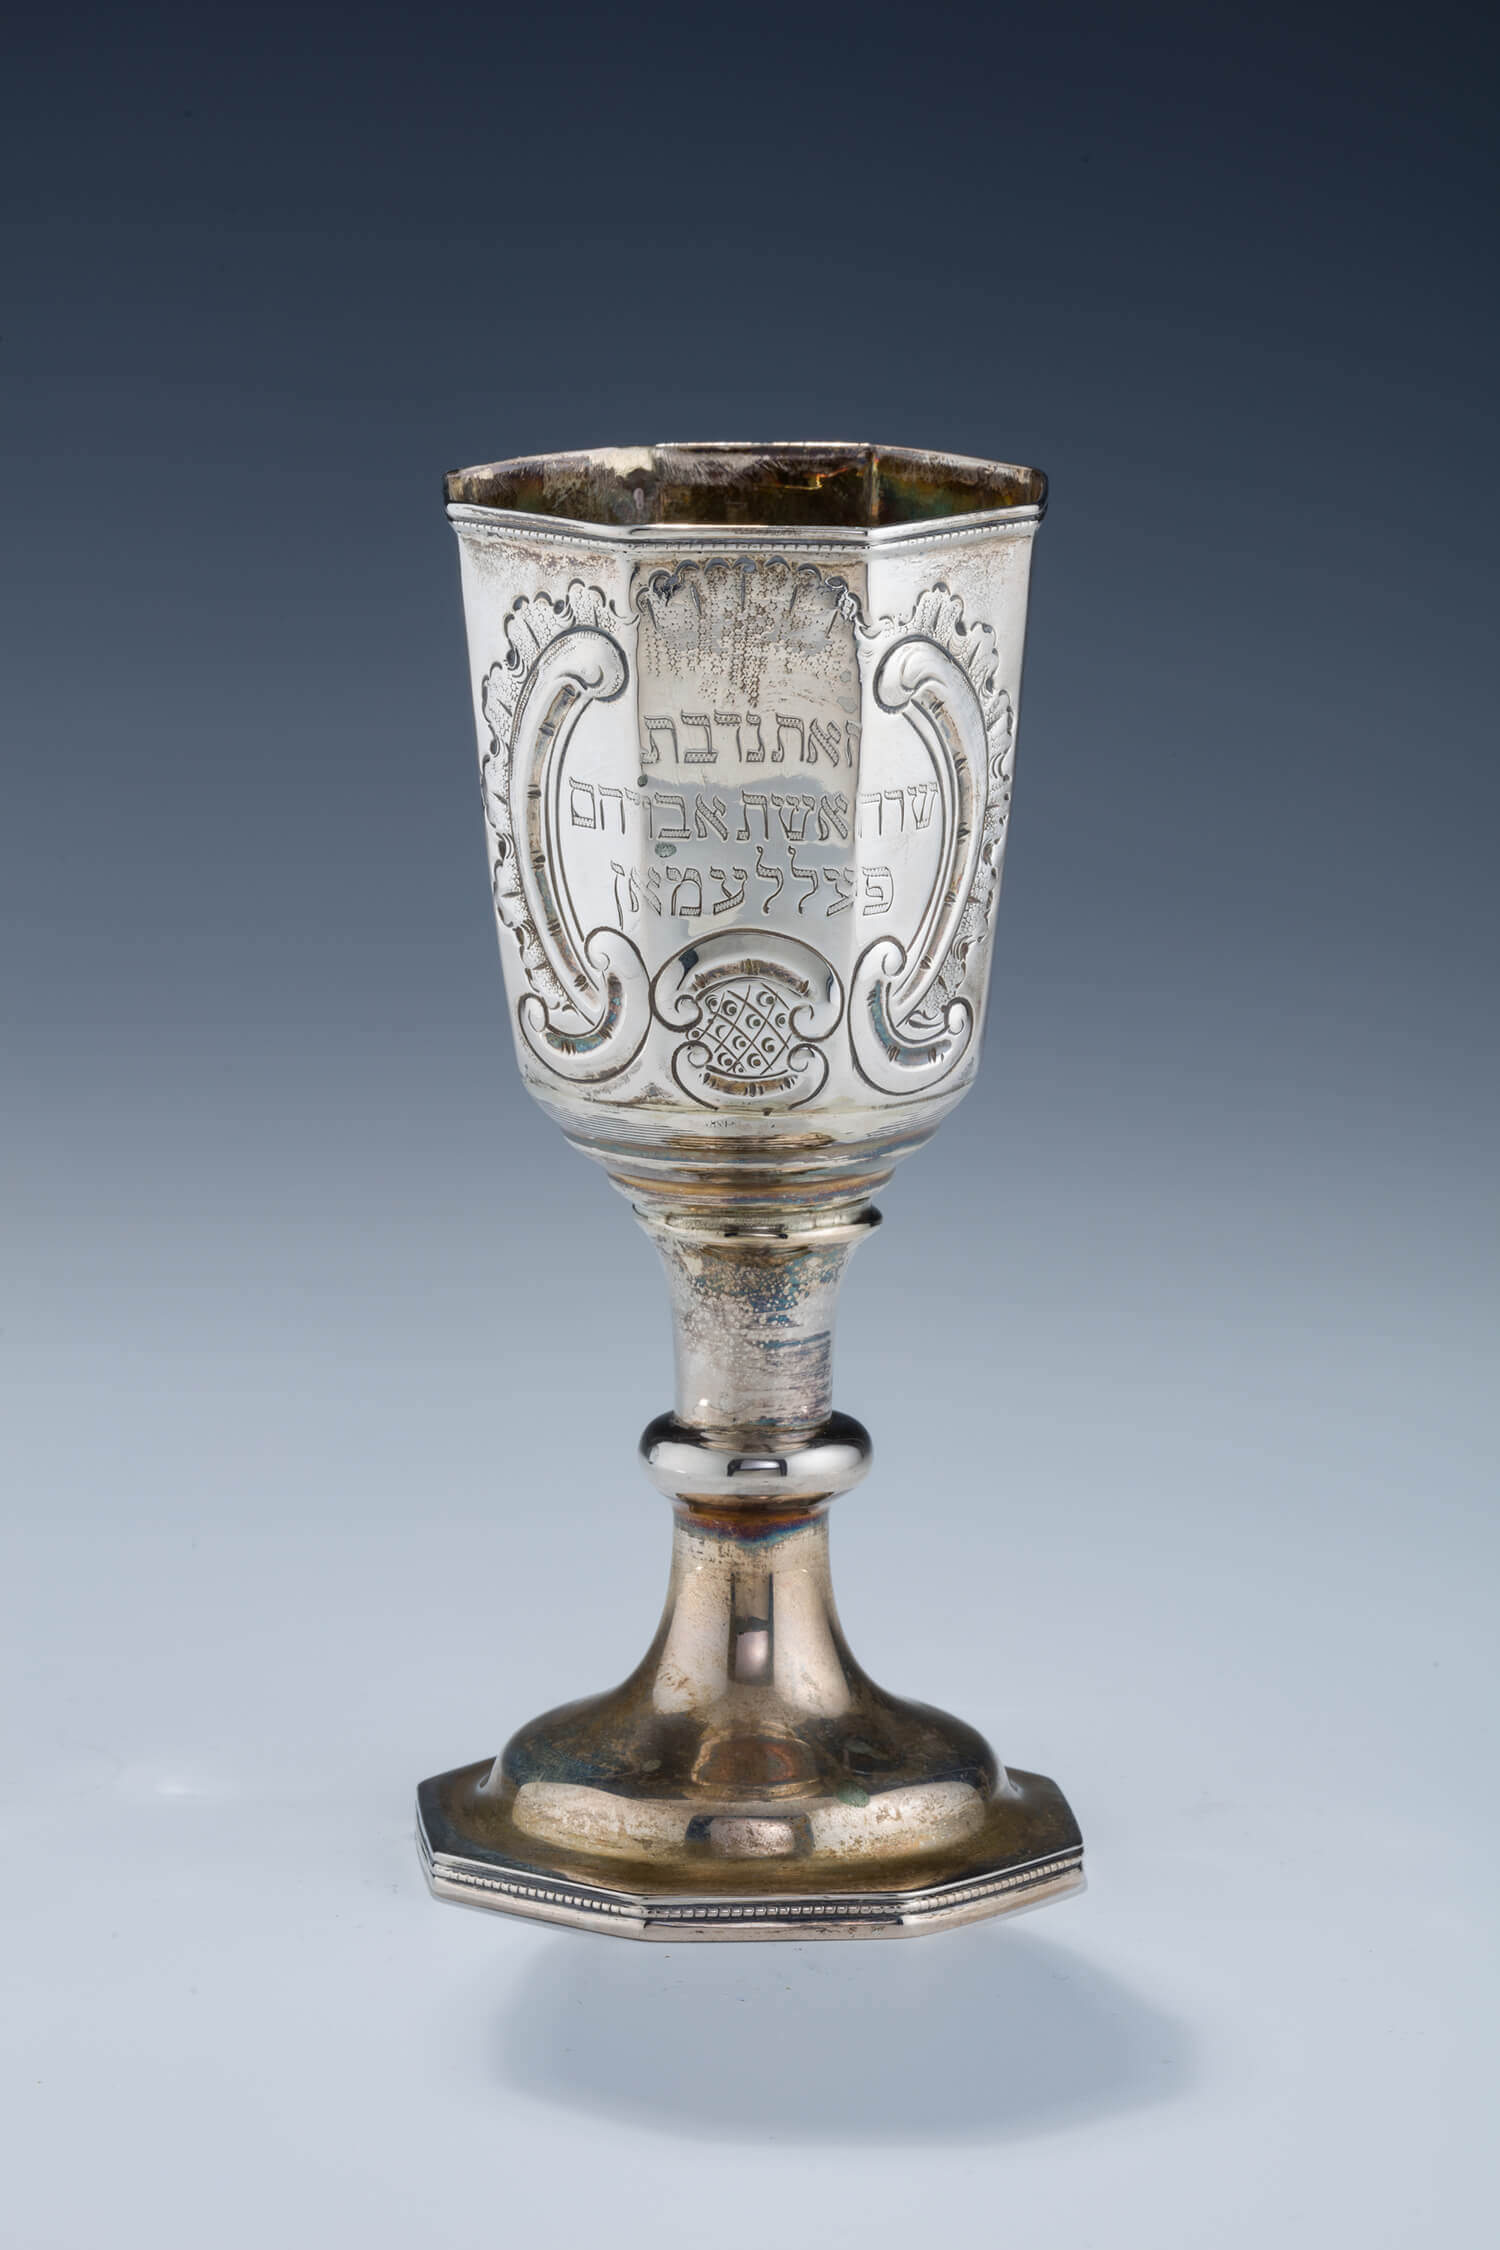 041. A LARGE SILVER KIDDUSH CUP